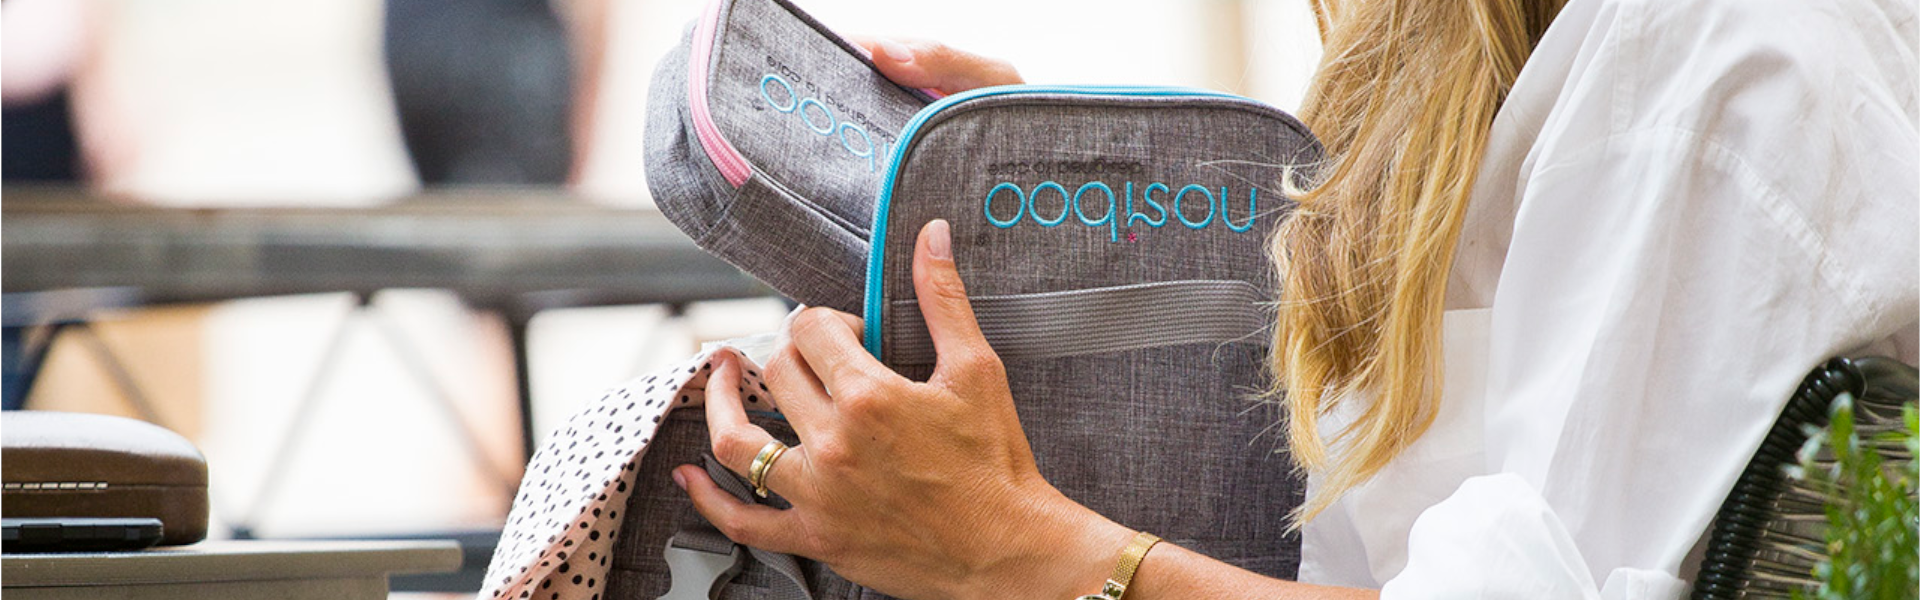 Nosiboo Bag Toiletry Bag